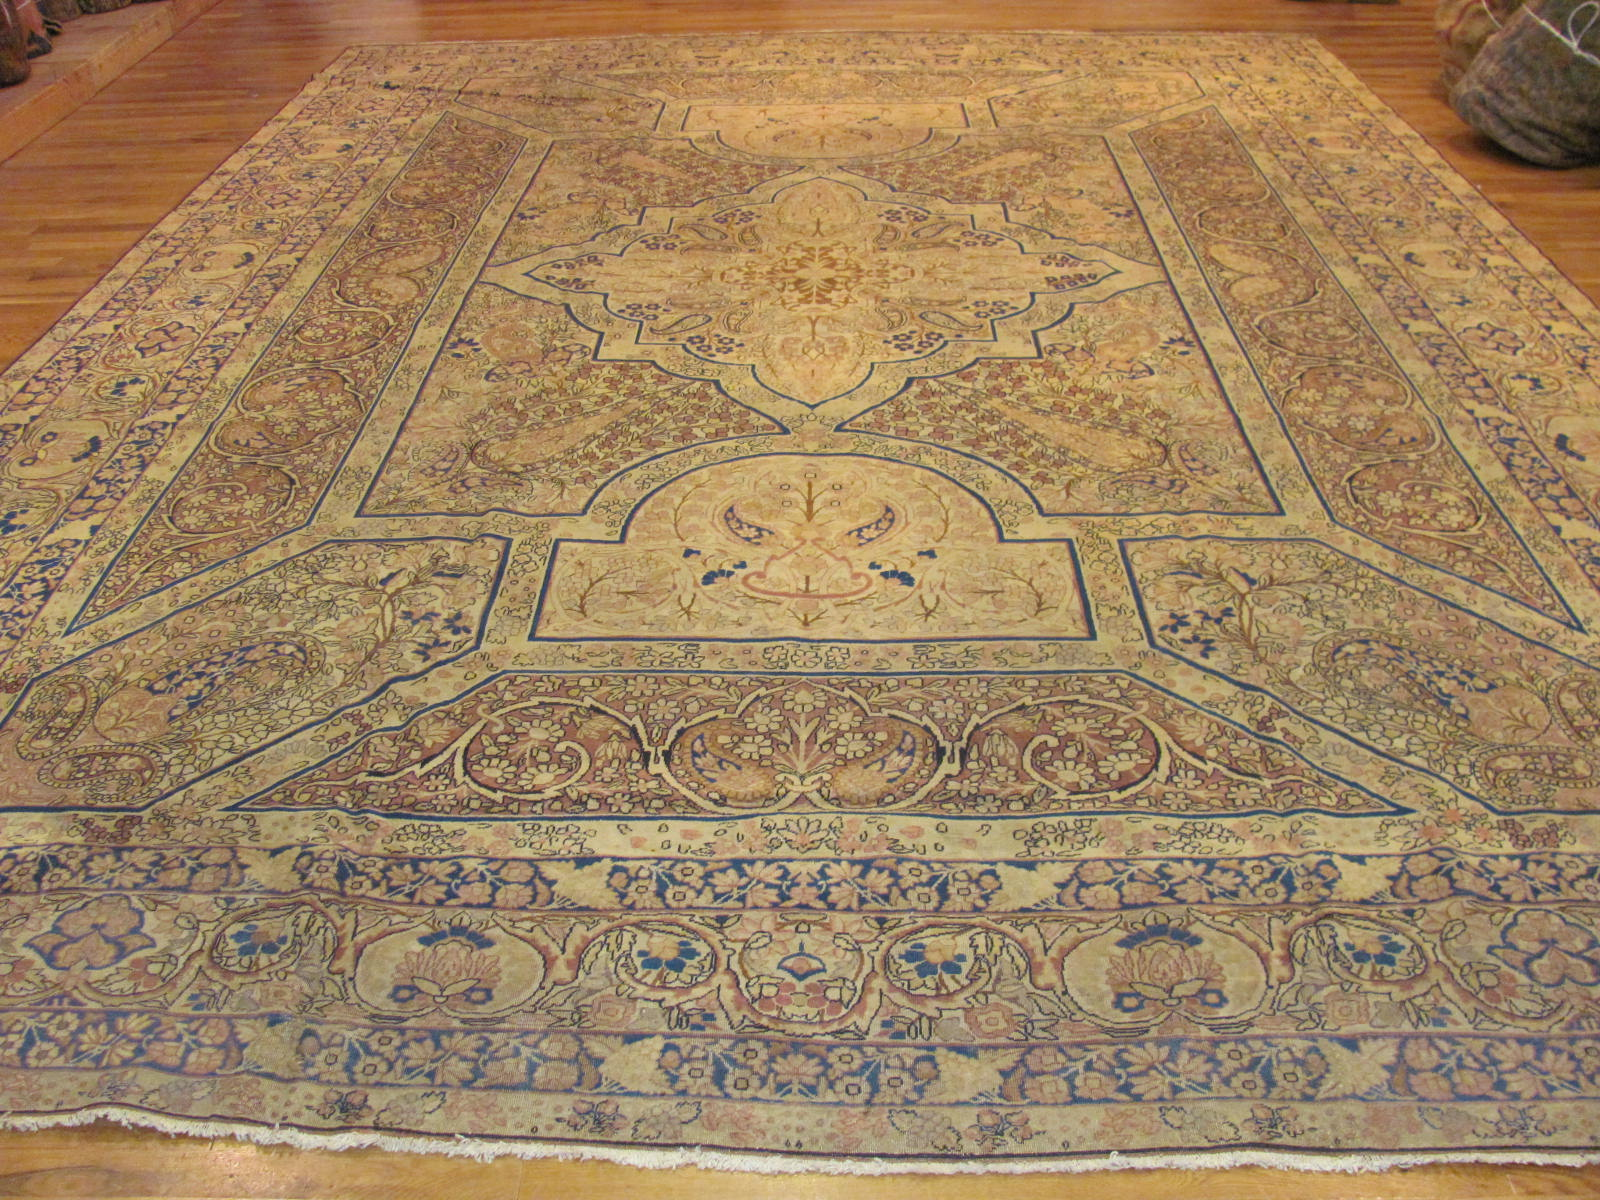 Antique Kerman Lavar Carpet | Persia | Circa 1900